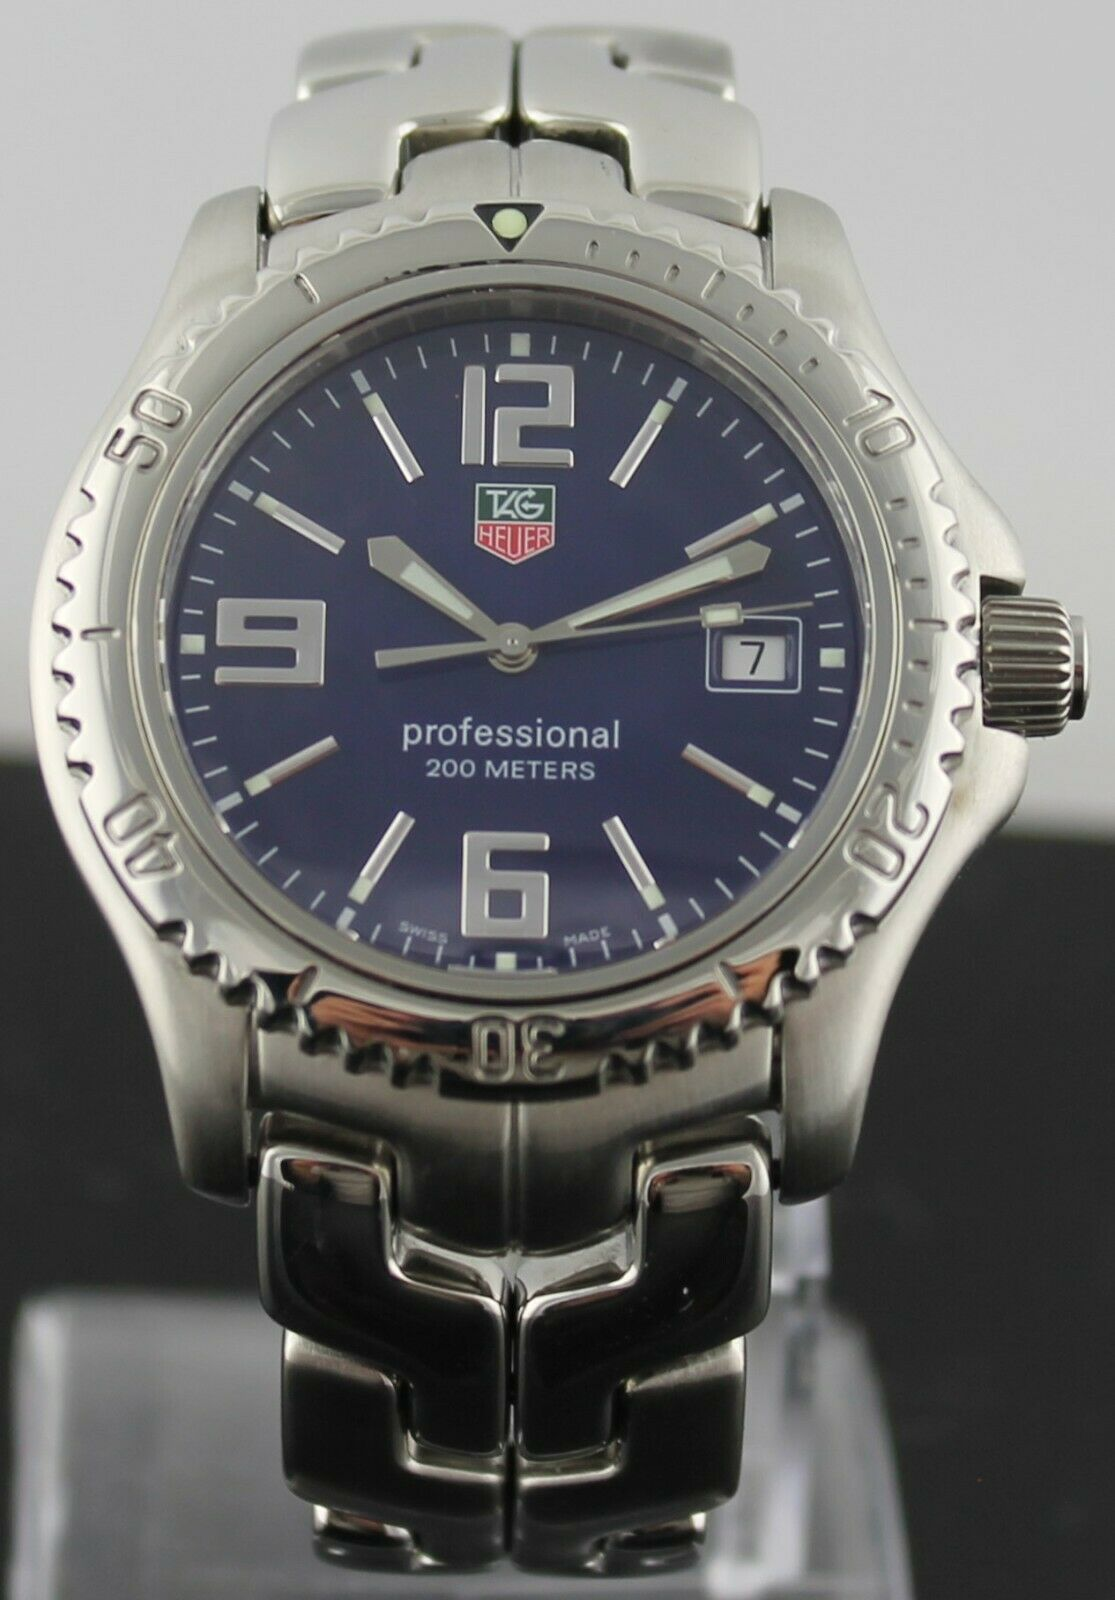 TAG HEUER LINK PROFESSIONAL WT1113.BA0551 BLUE QUARTZ CLASSIC MEN'S SWISS WATCH